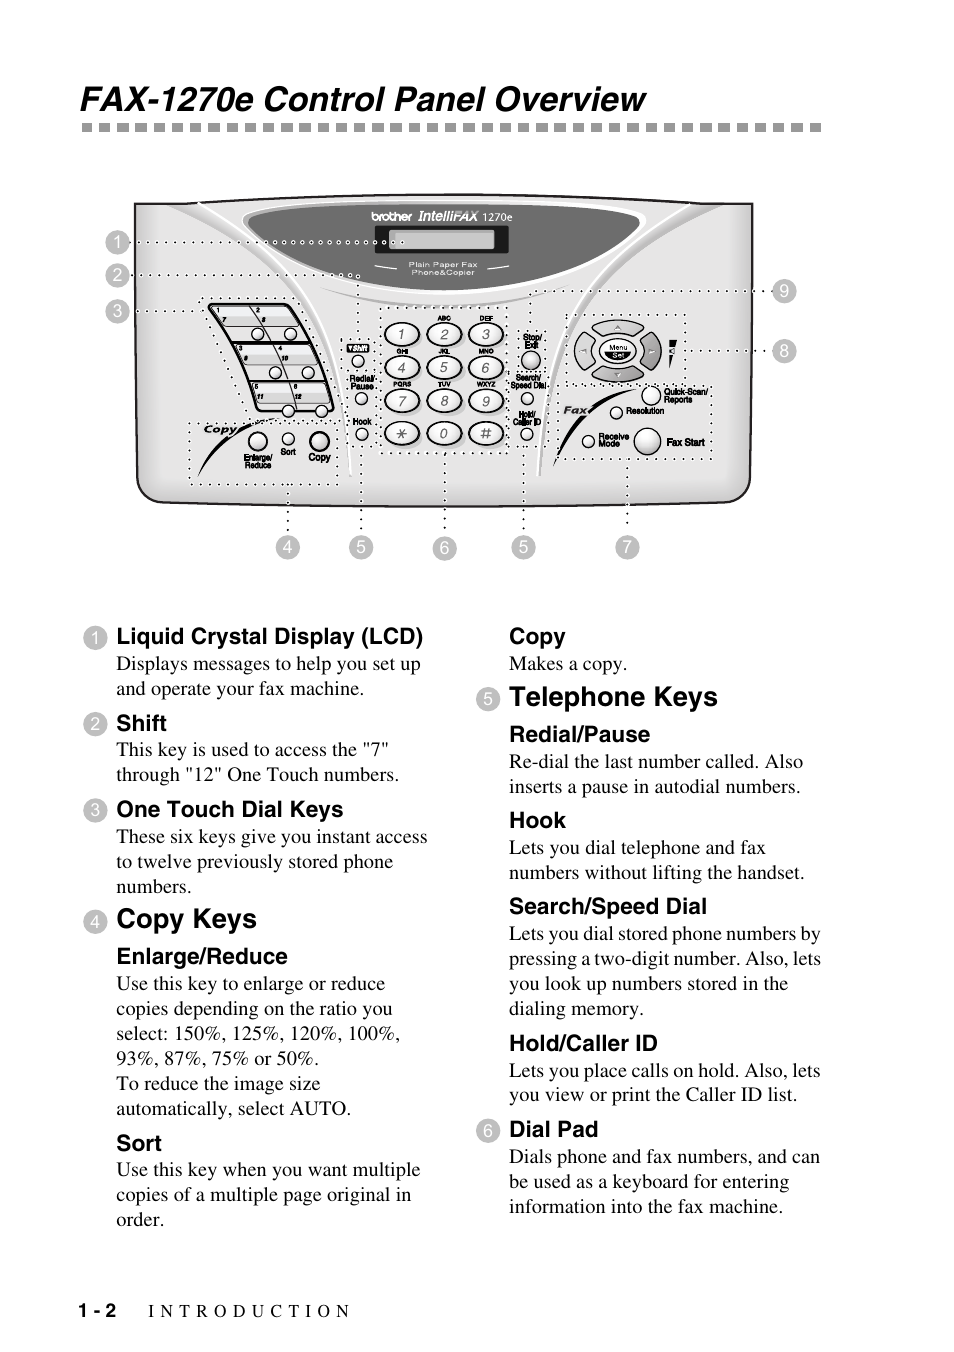 Fax-1270e control panel overview, Fax-1270e control panel overview -2, Copy  keys   Brother IntelliFAX 1270e User Manual   Page 16 / 108